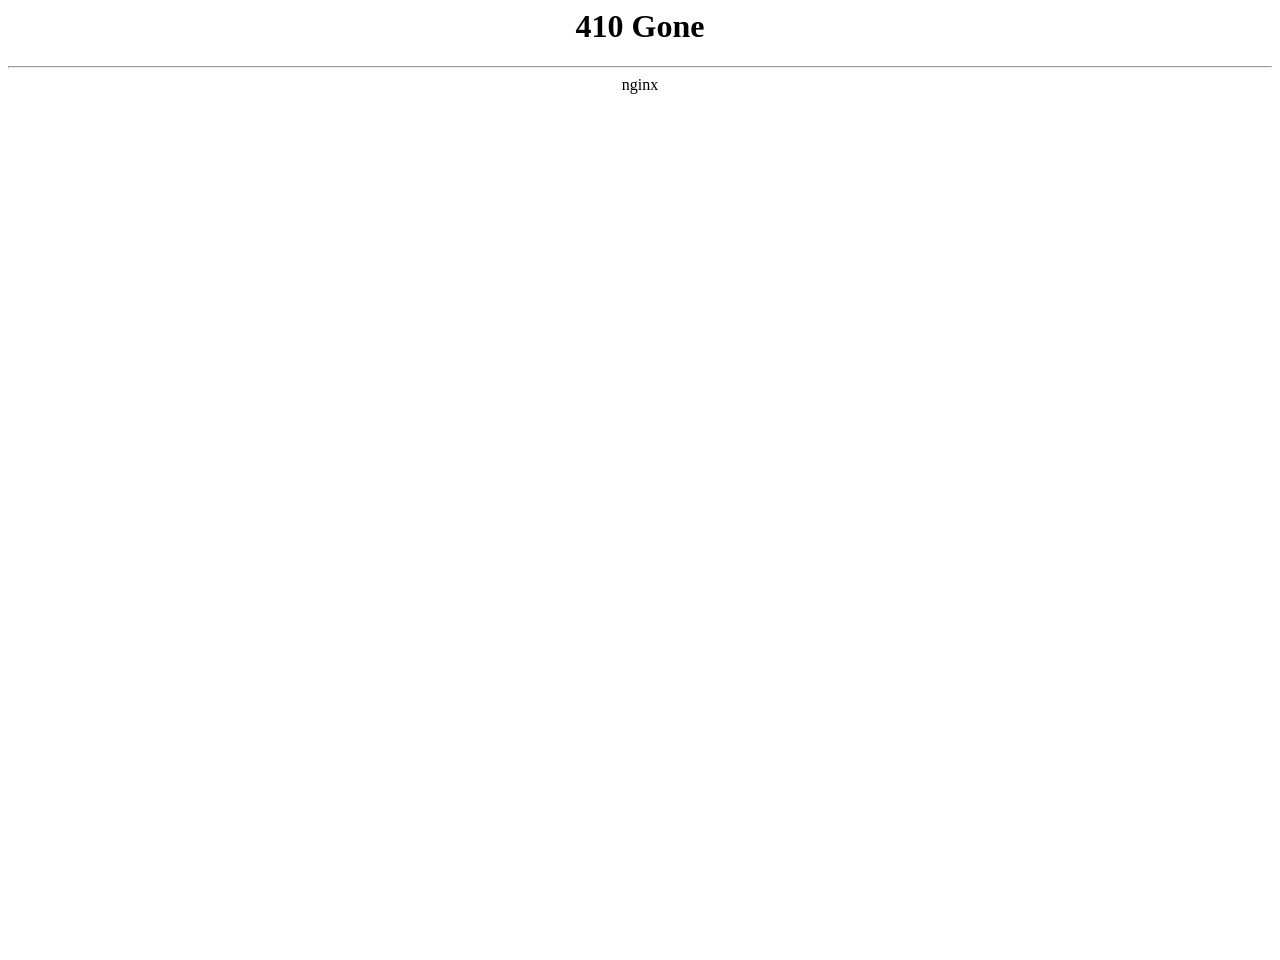 Netspace co-founder joins MessageMedia as CEO